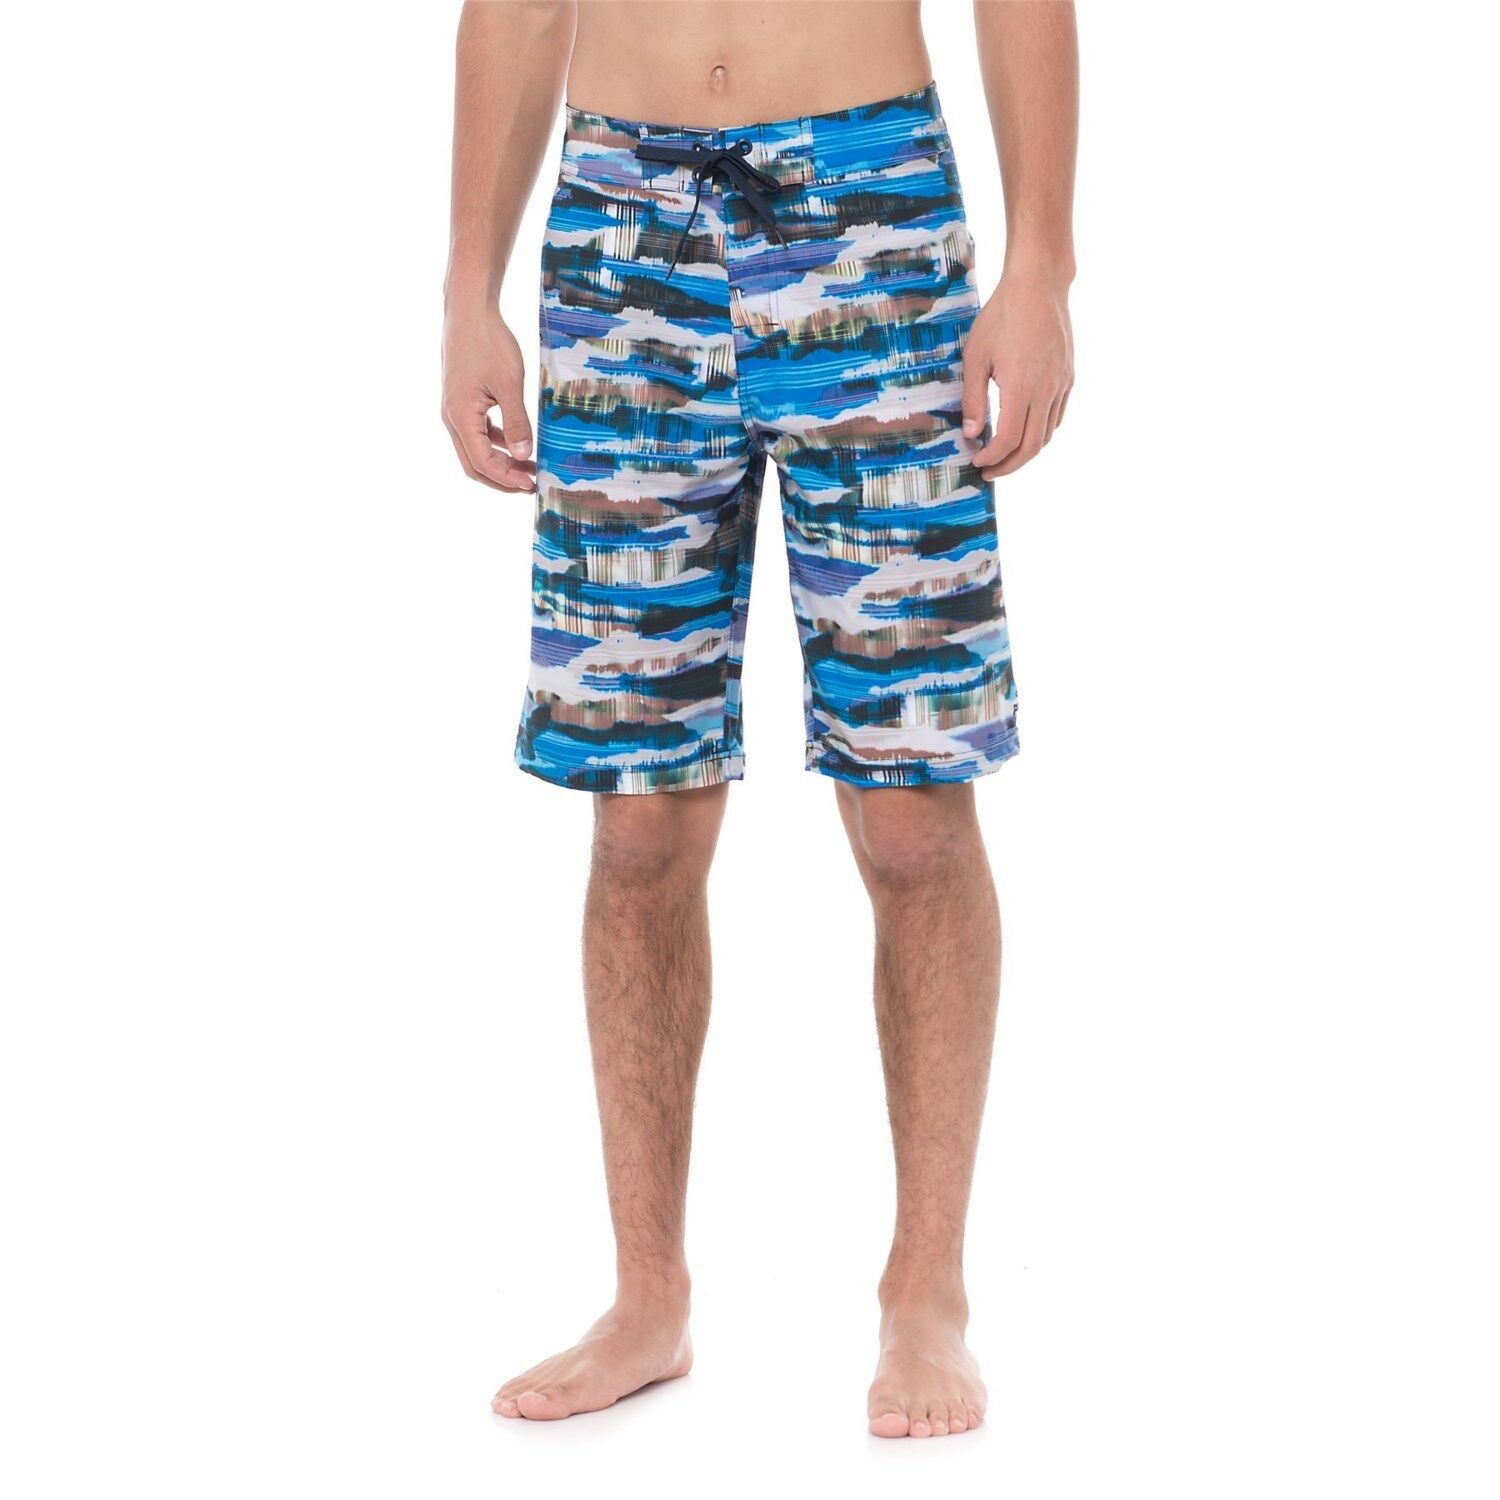 NEW prAna Mens Sediment Swim Trunks Board Short UPF 50+